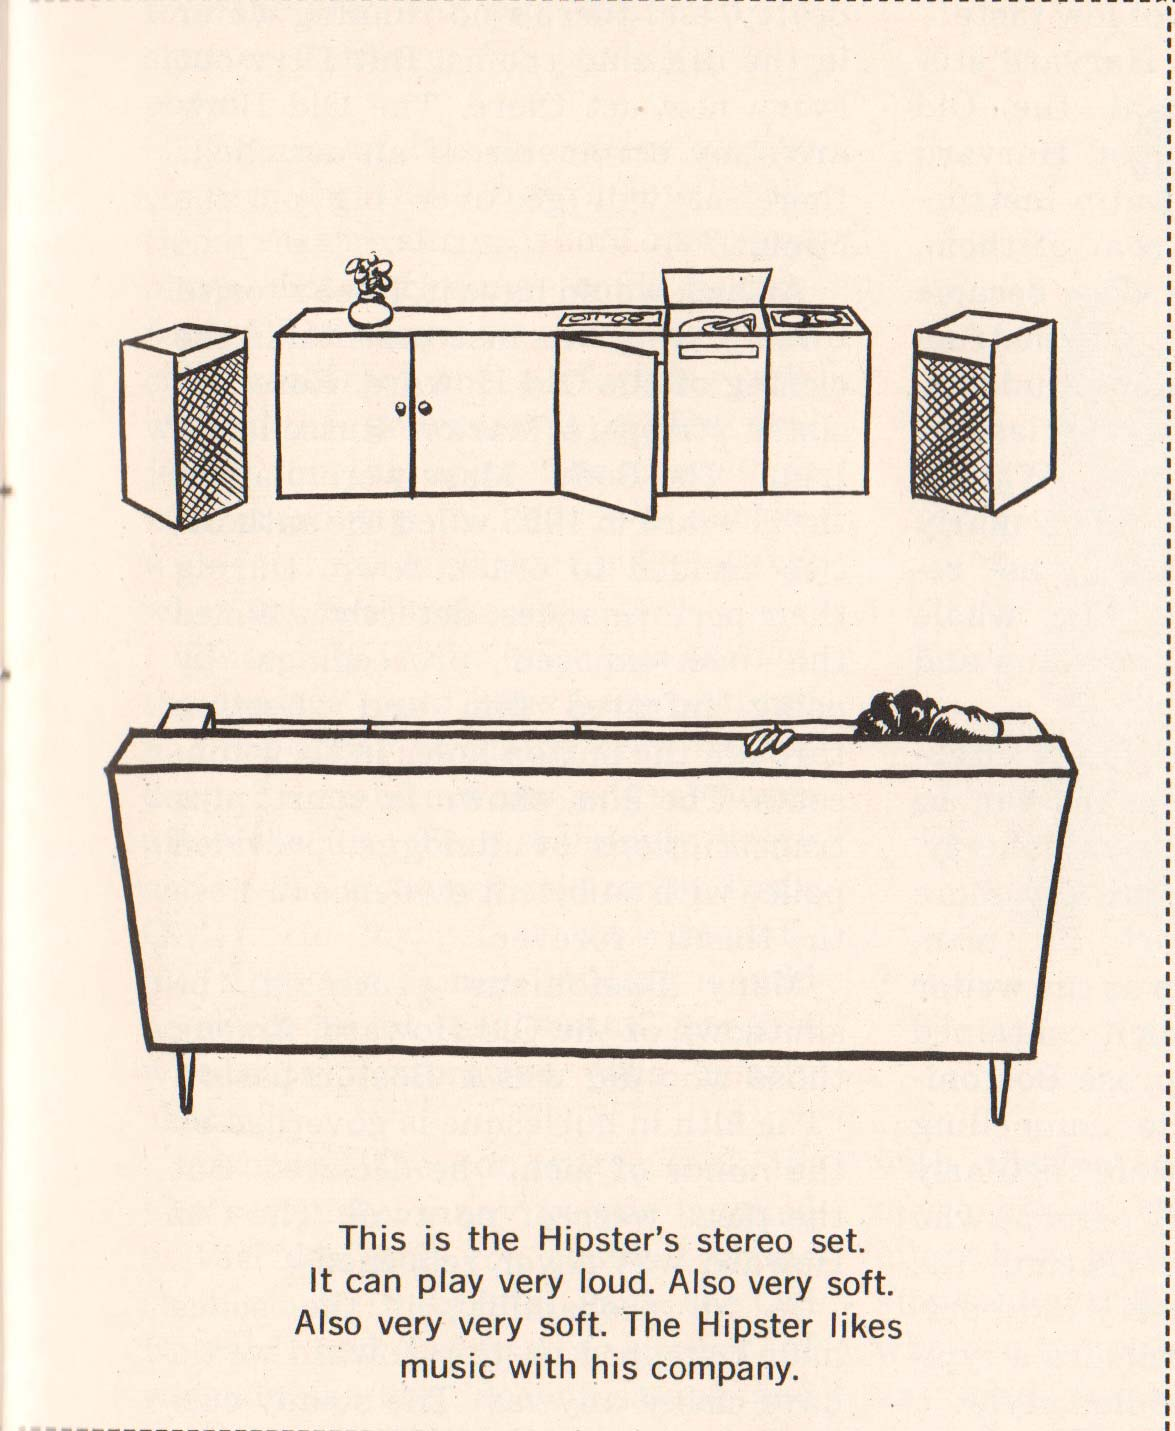 Hipster Coloring Book 1962 (09)